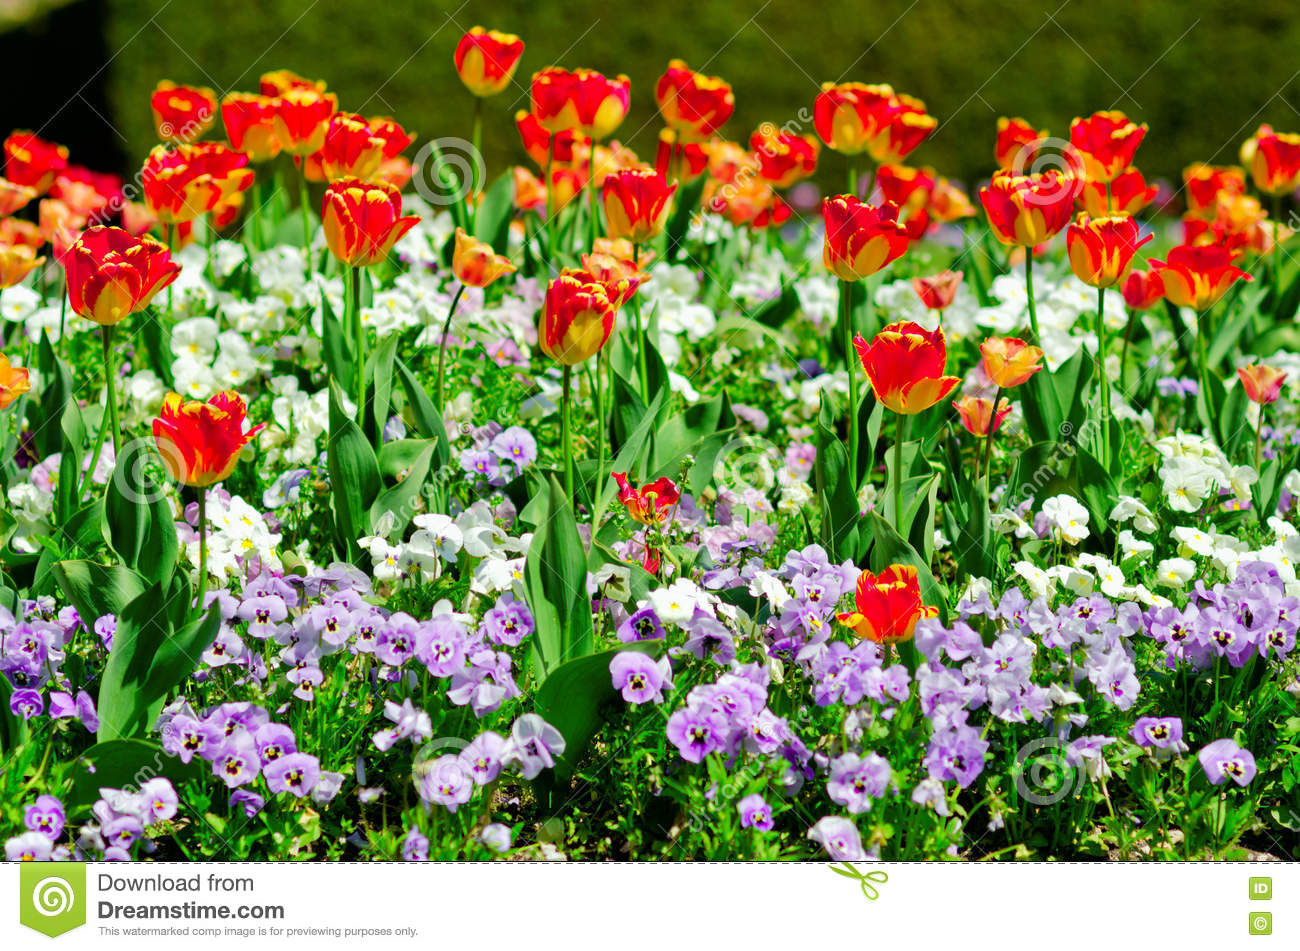 Blooming Flowerbed With Red Tulips And Pancies Flowers